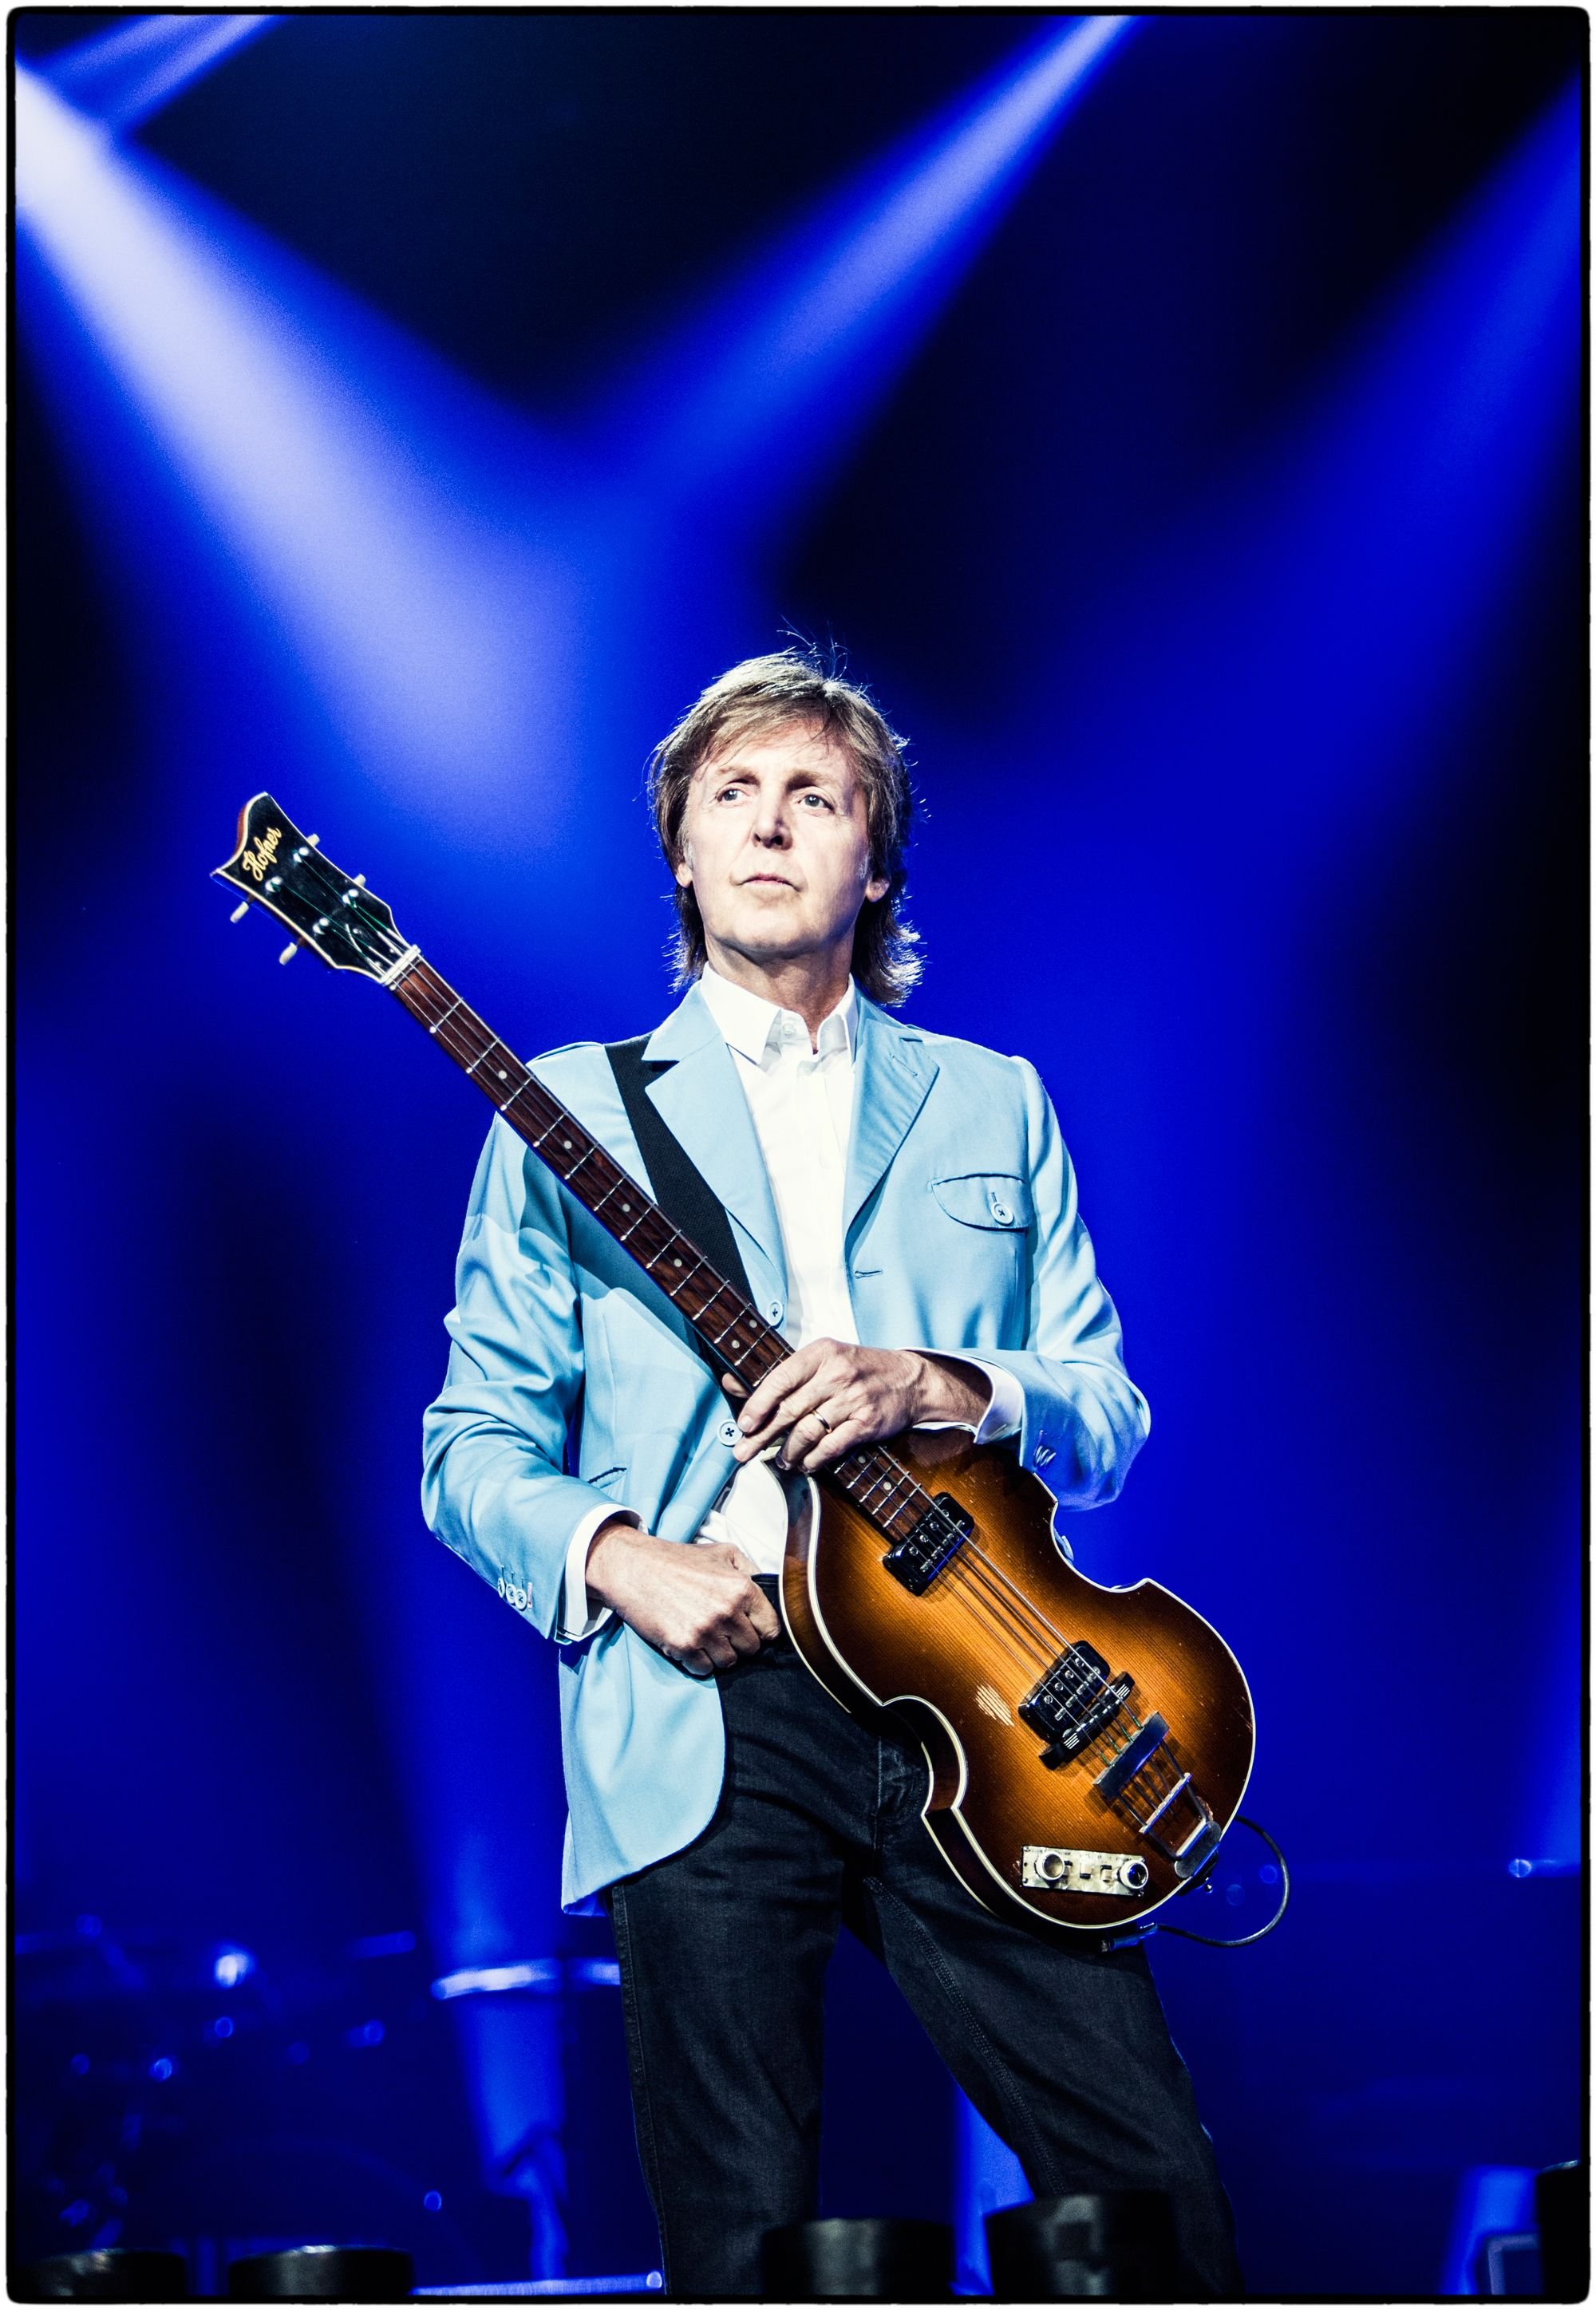 Paul mccartney out there tour july 9 2014 paul mccartney paul mccartney out there tour july 9 2014 nvjuhfo Choice Image